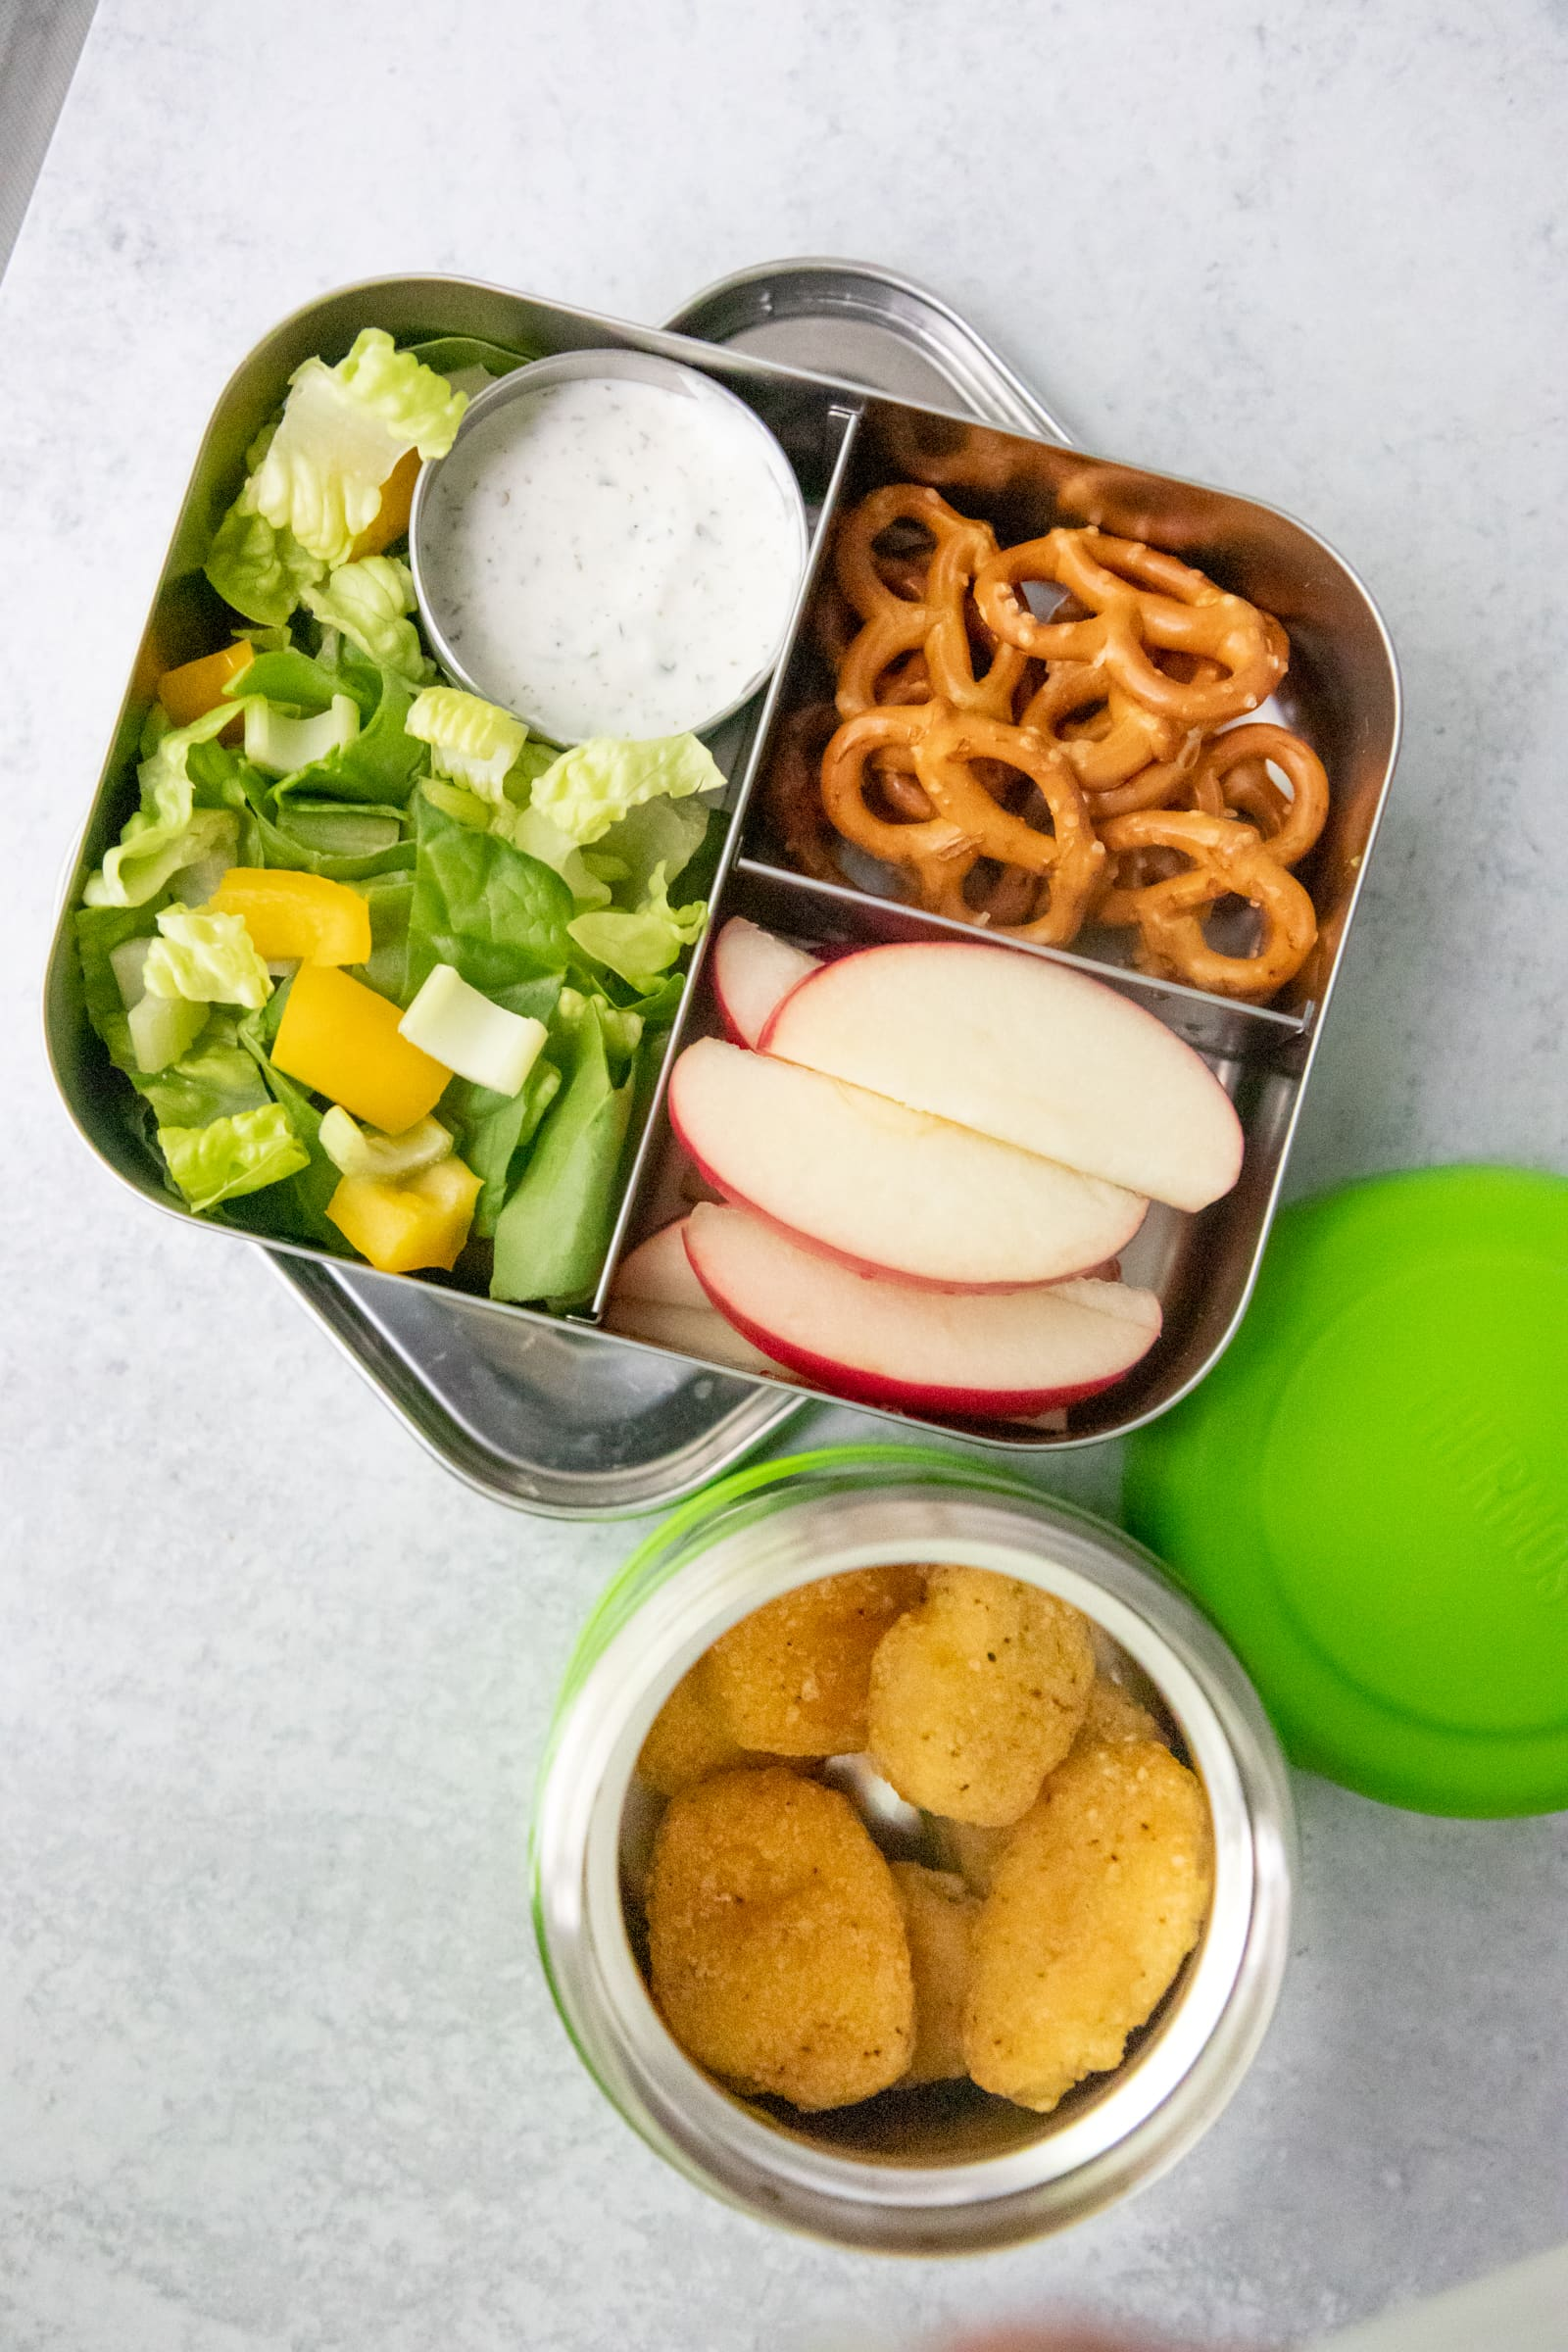 Chicken nuggets in a Thermos, next to a lunch box filled with salad, pretzels, and apple slices